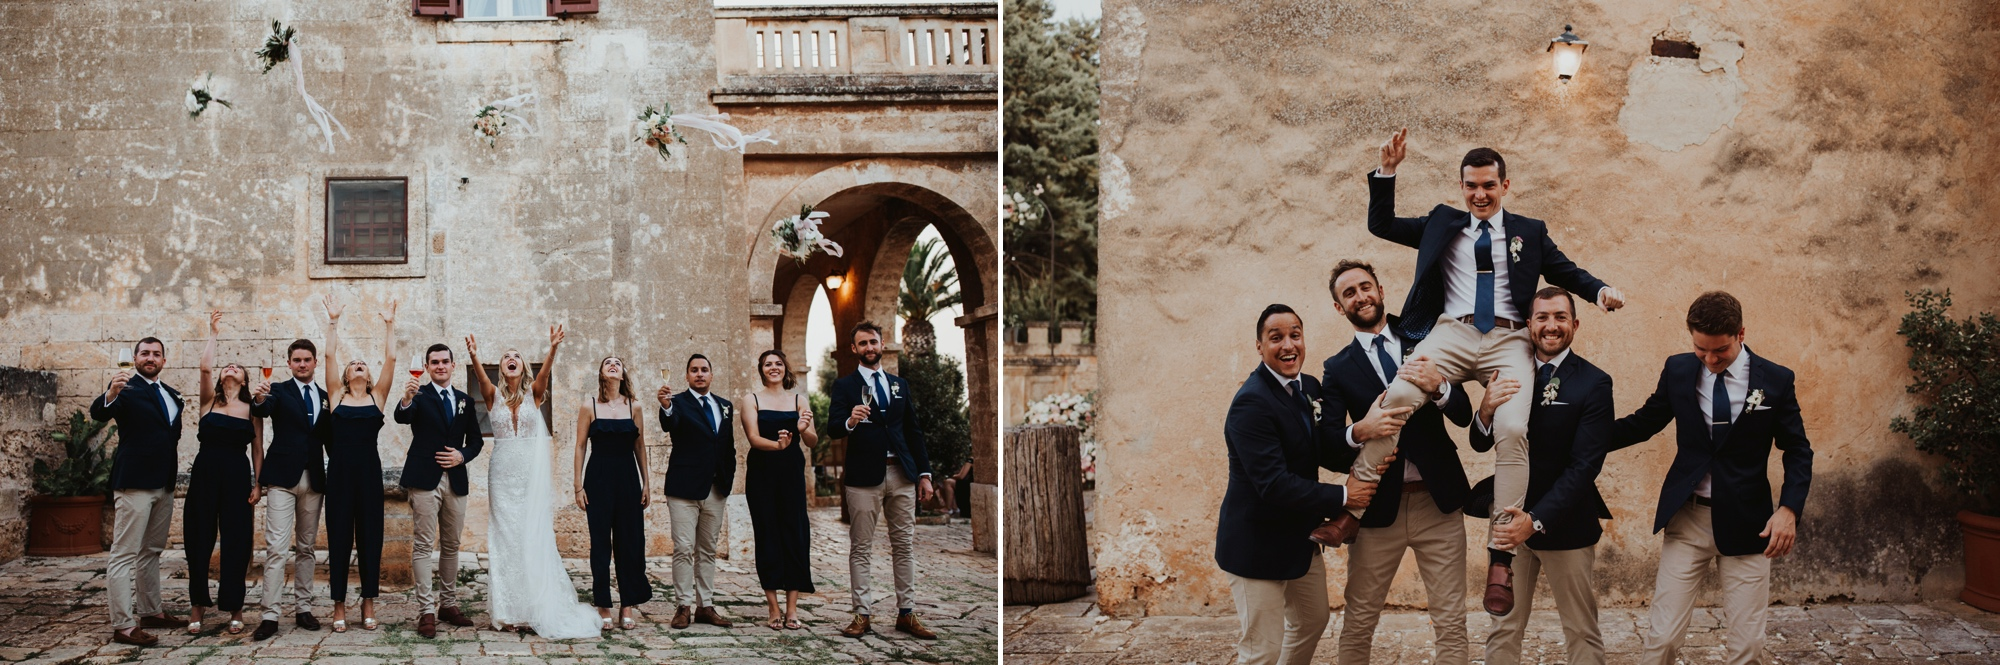 0000000058_Rob and Lucy-677_Rob and Lucy-653_Italy_Just_Engaged_got_Destination_Weddings.jpg